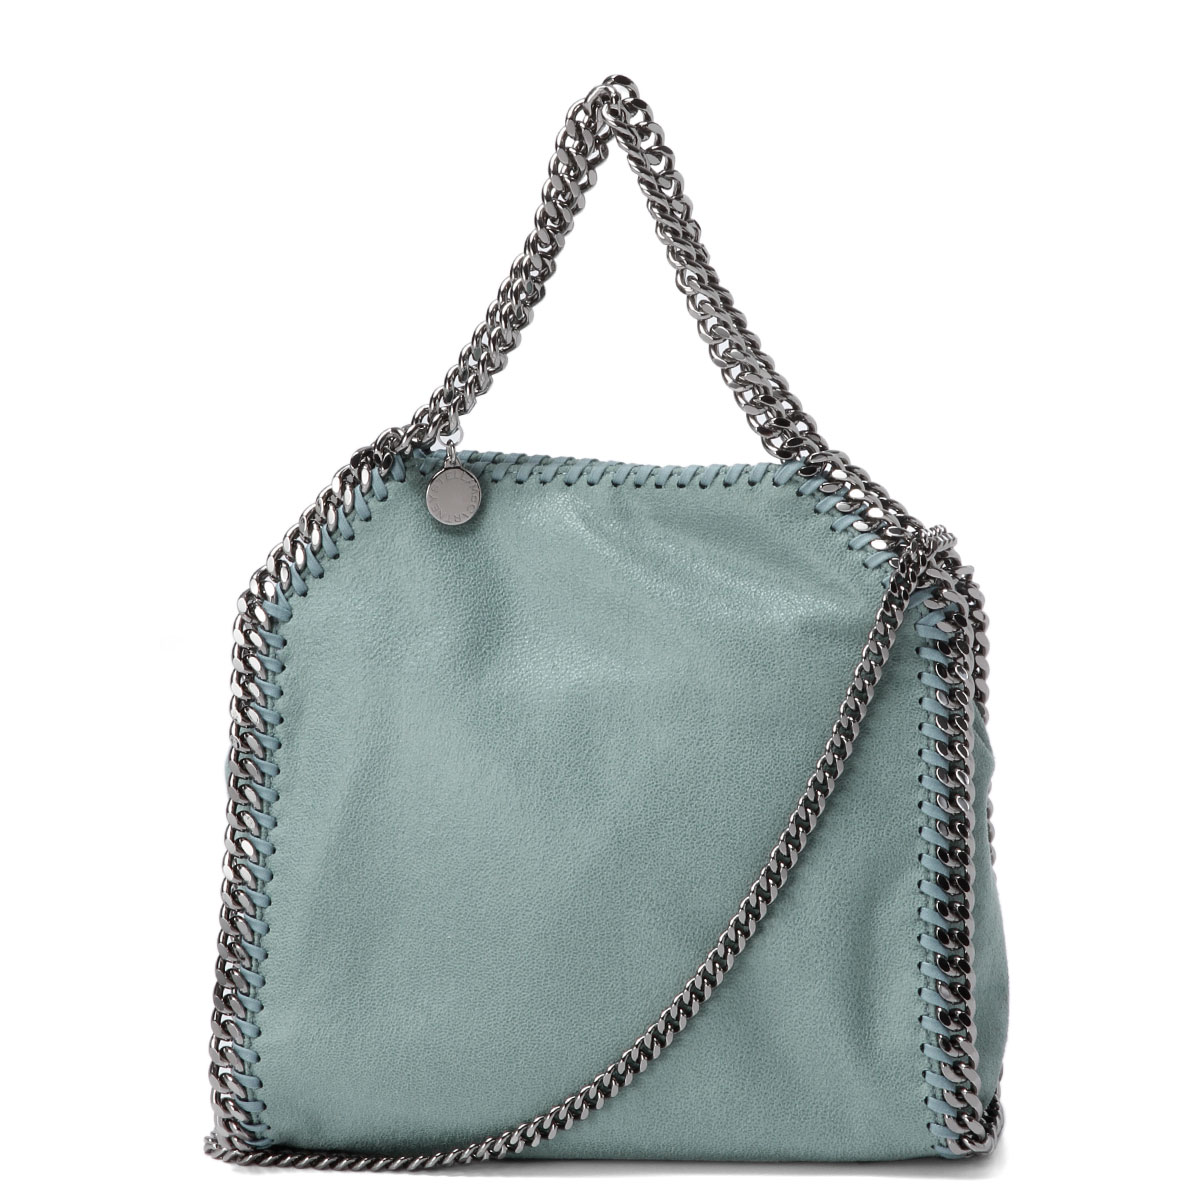 371223 Stella McCartney STELLA McCARTNEY bag lady W9132 4800 shoulders tote  bag mini-FALABELLA Fala seawife SKY blue belonging to b5750b7687f13